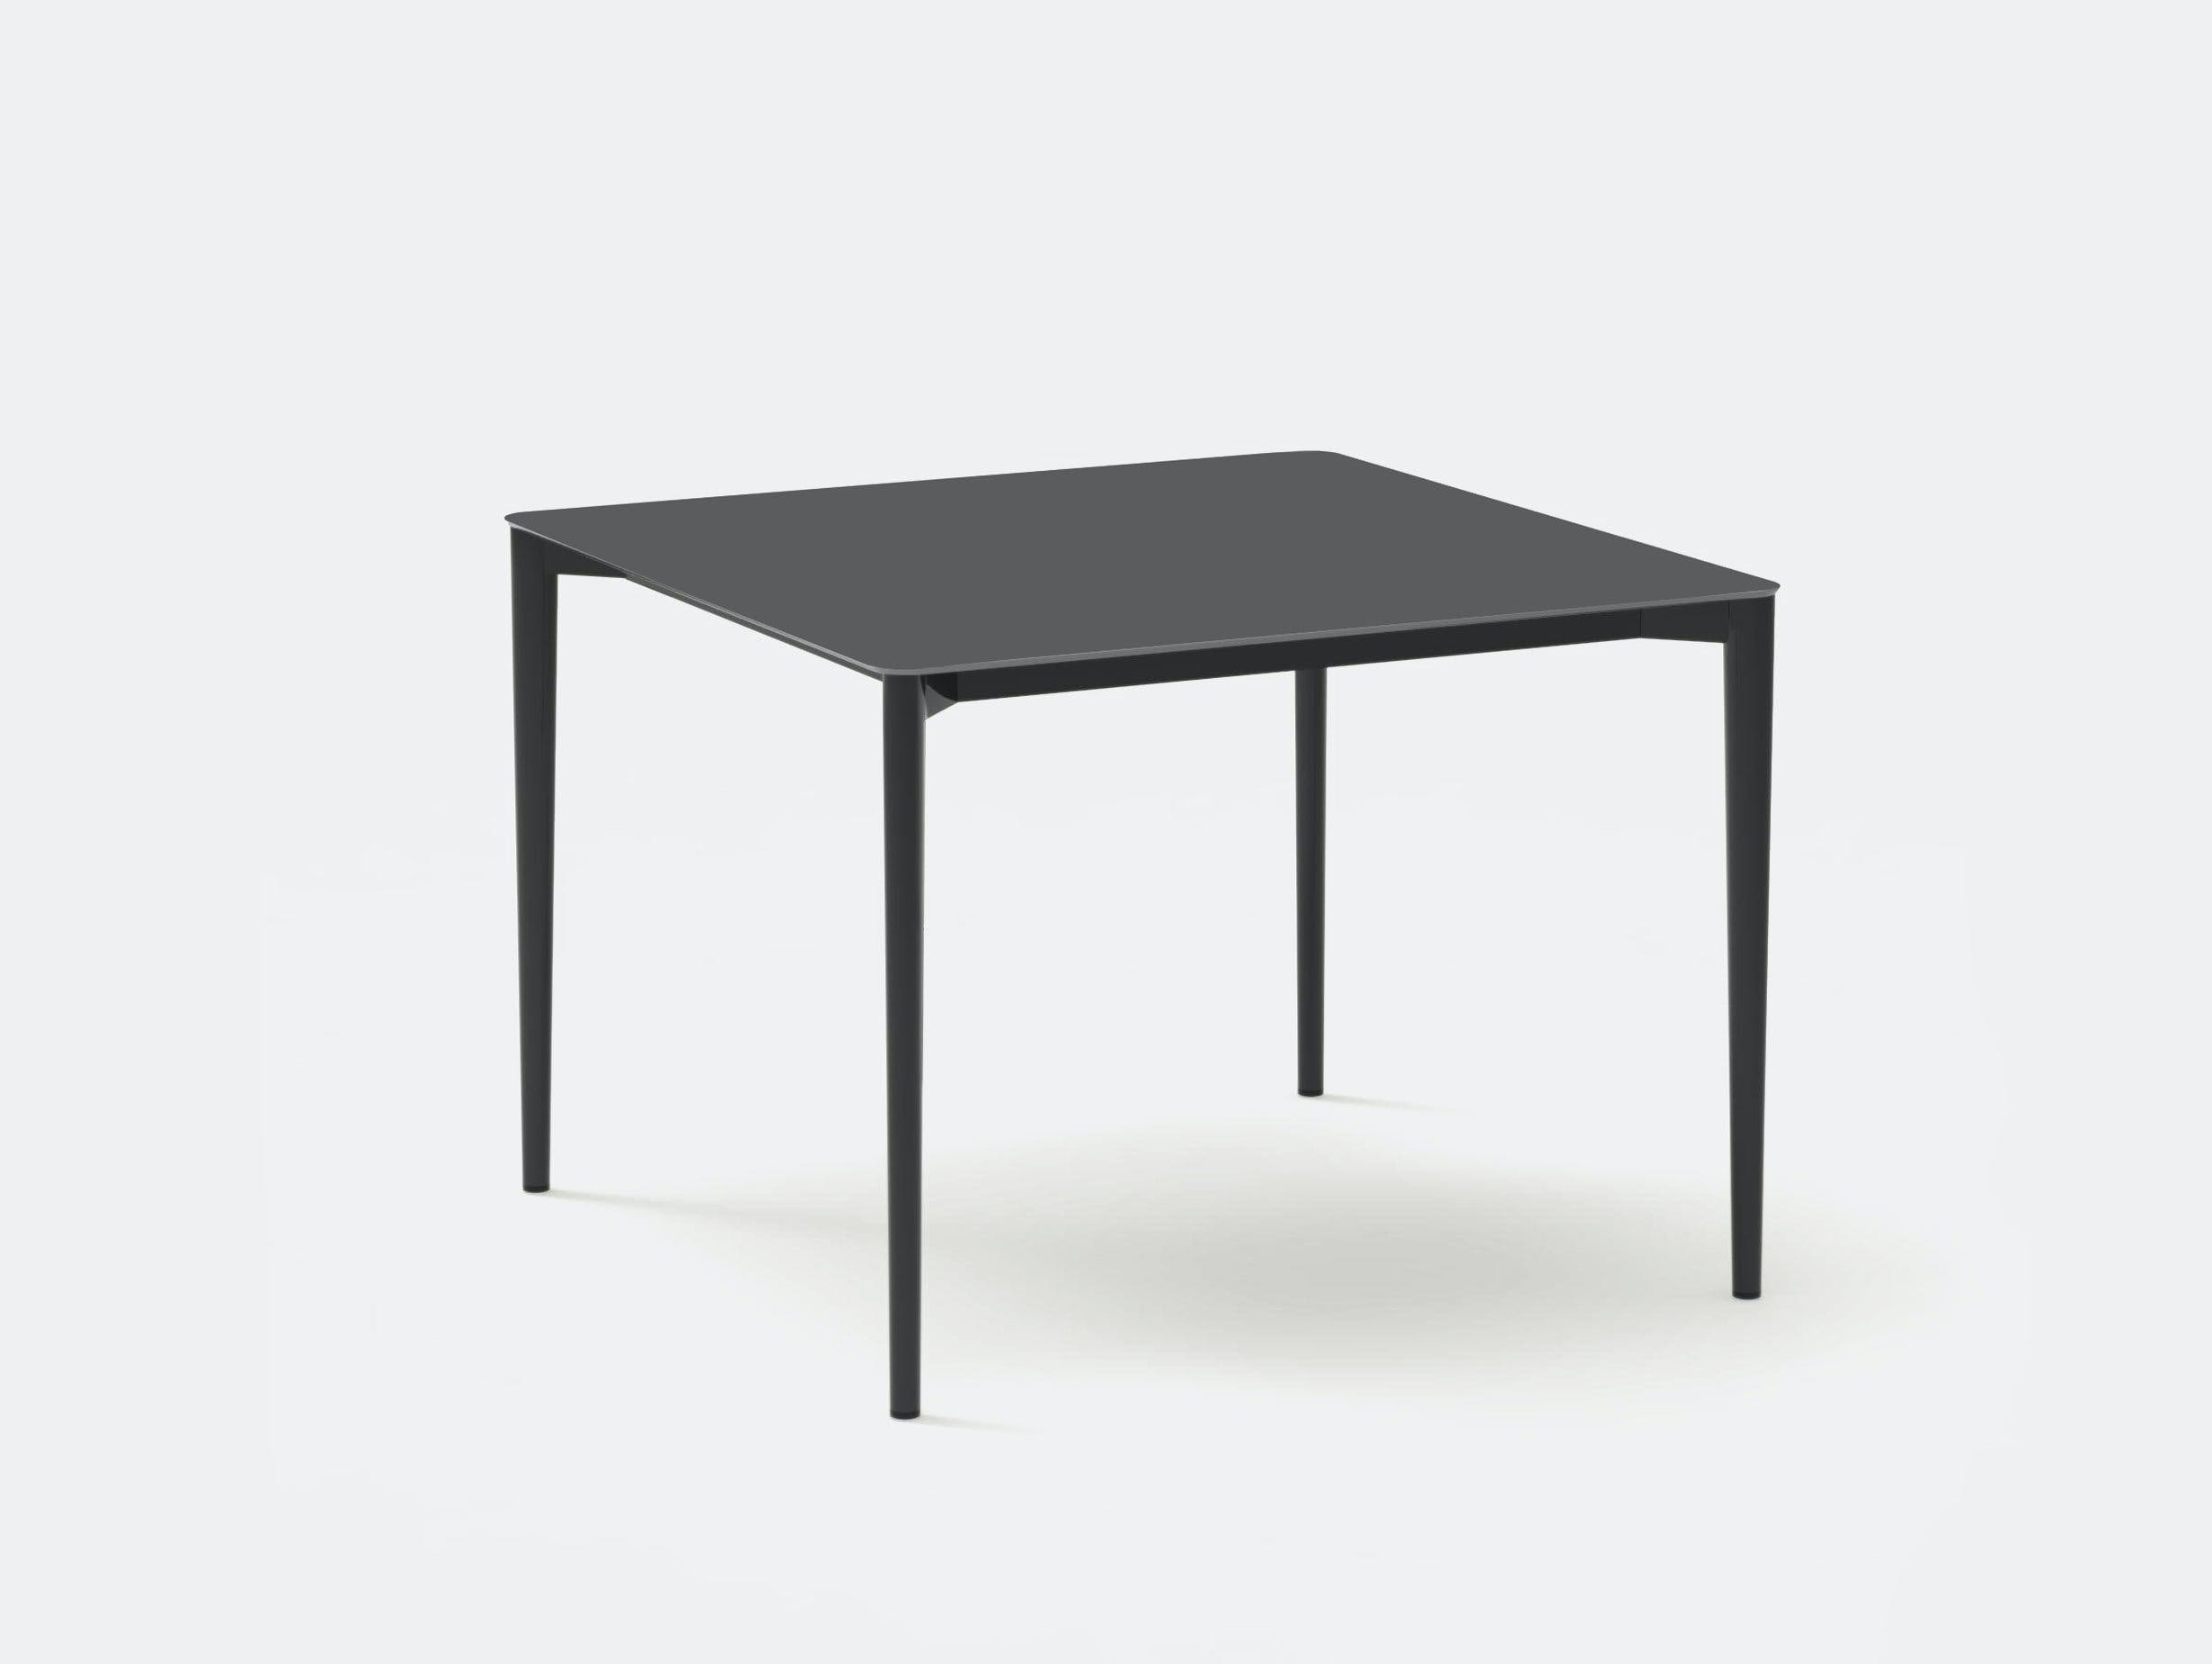 Expormim nude square dining table C130